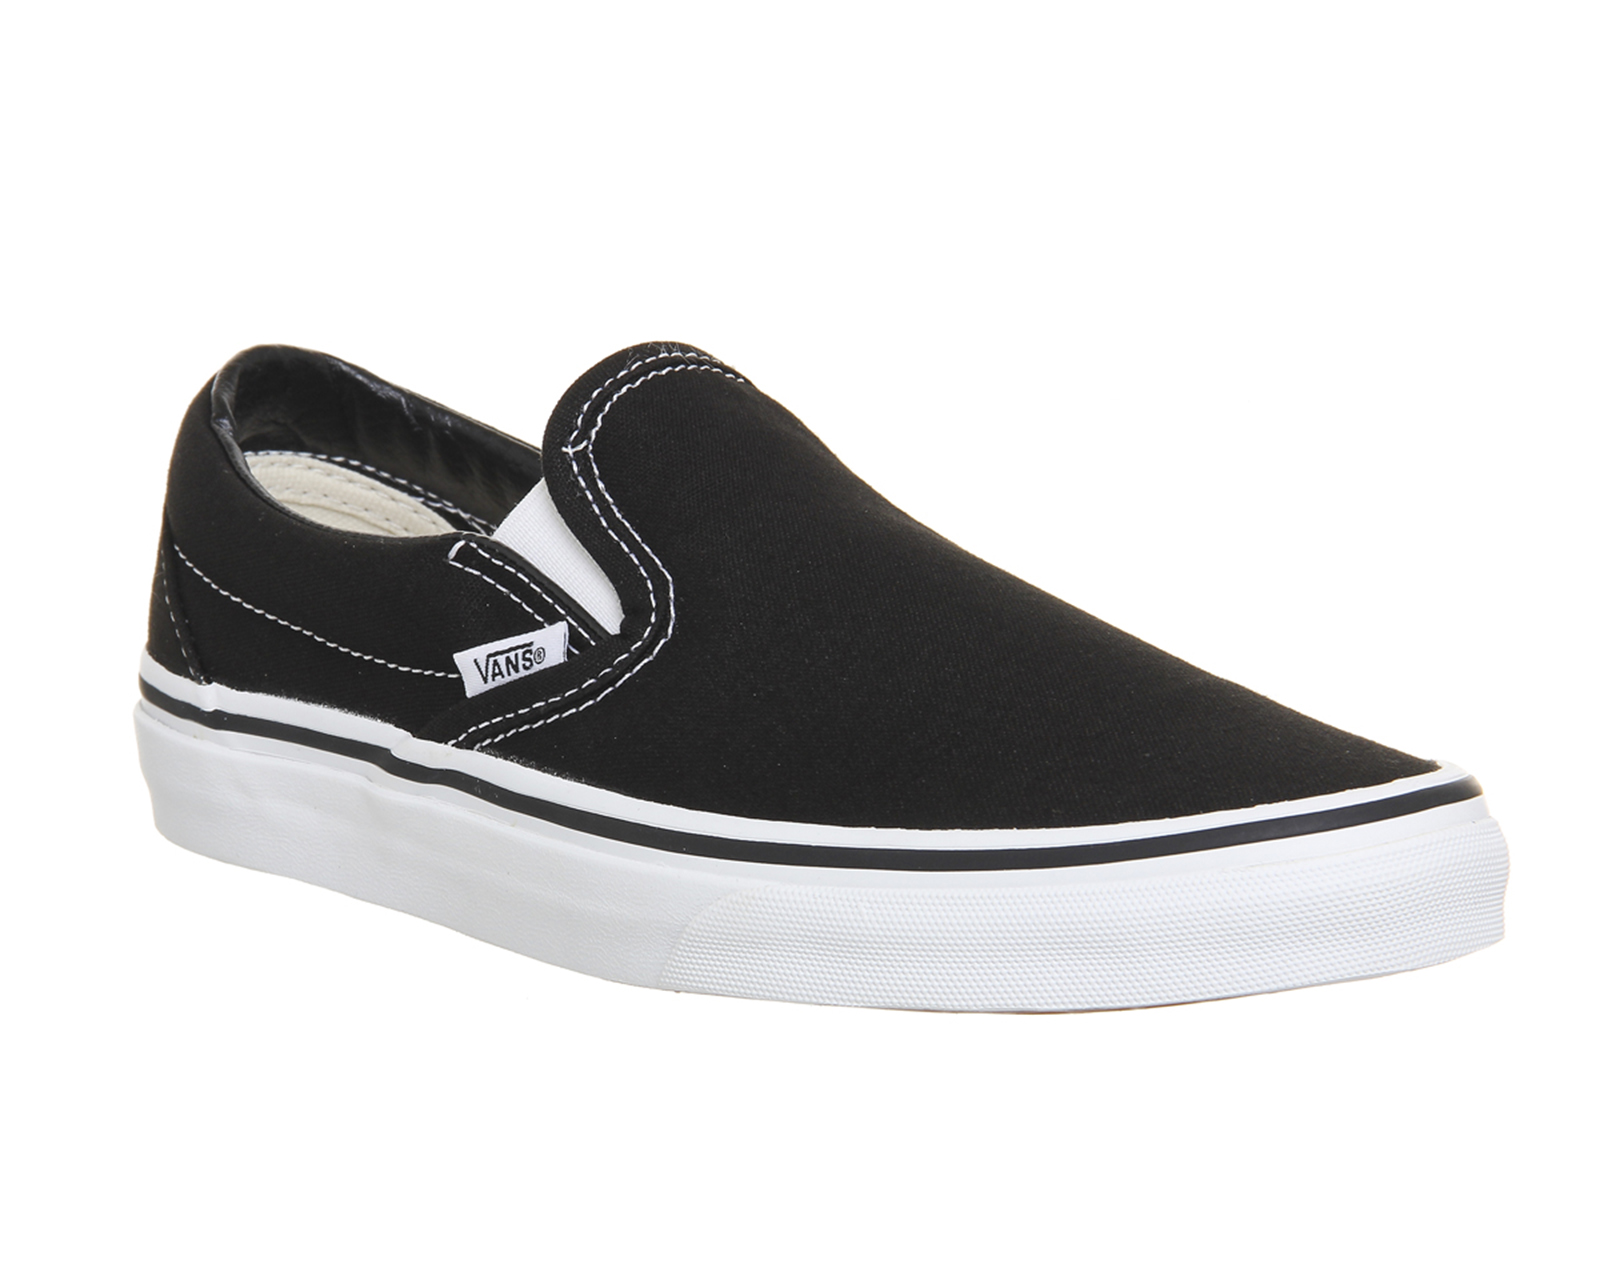 mens vans classic slip on shoes black white trainers shoes. Black Bedroom Furniture Sets. Home Design Ideas